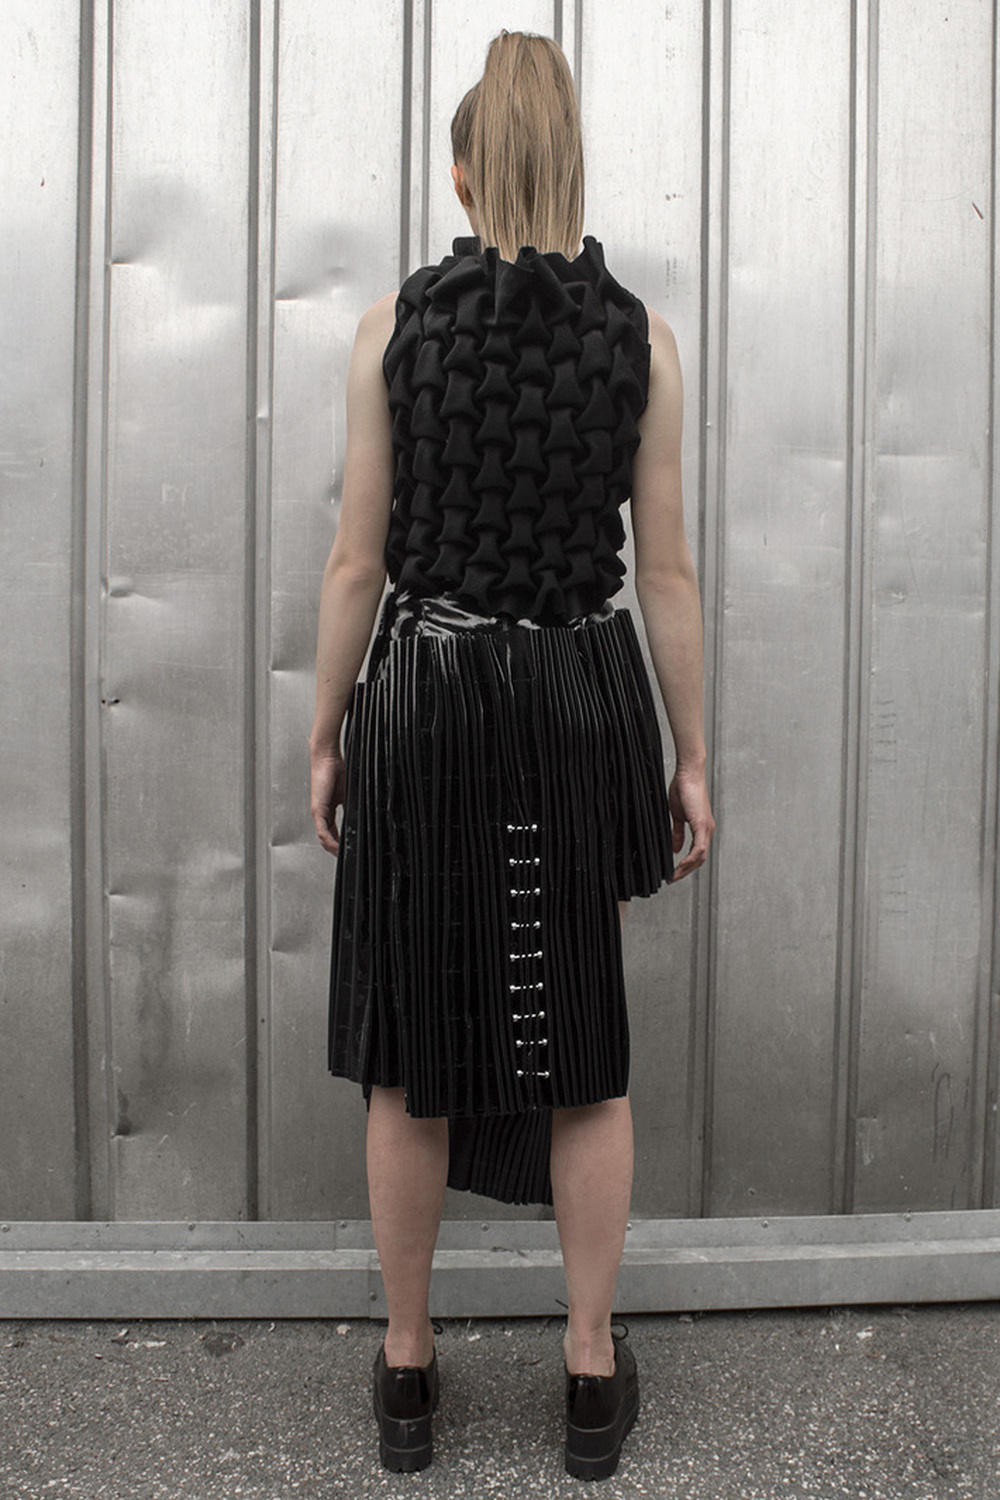 Look 6  Hand-smocked cashmere top with metal embellishments and a pleated, black vinyl skirt